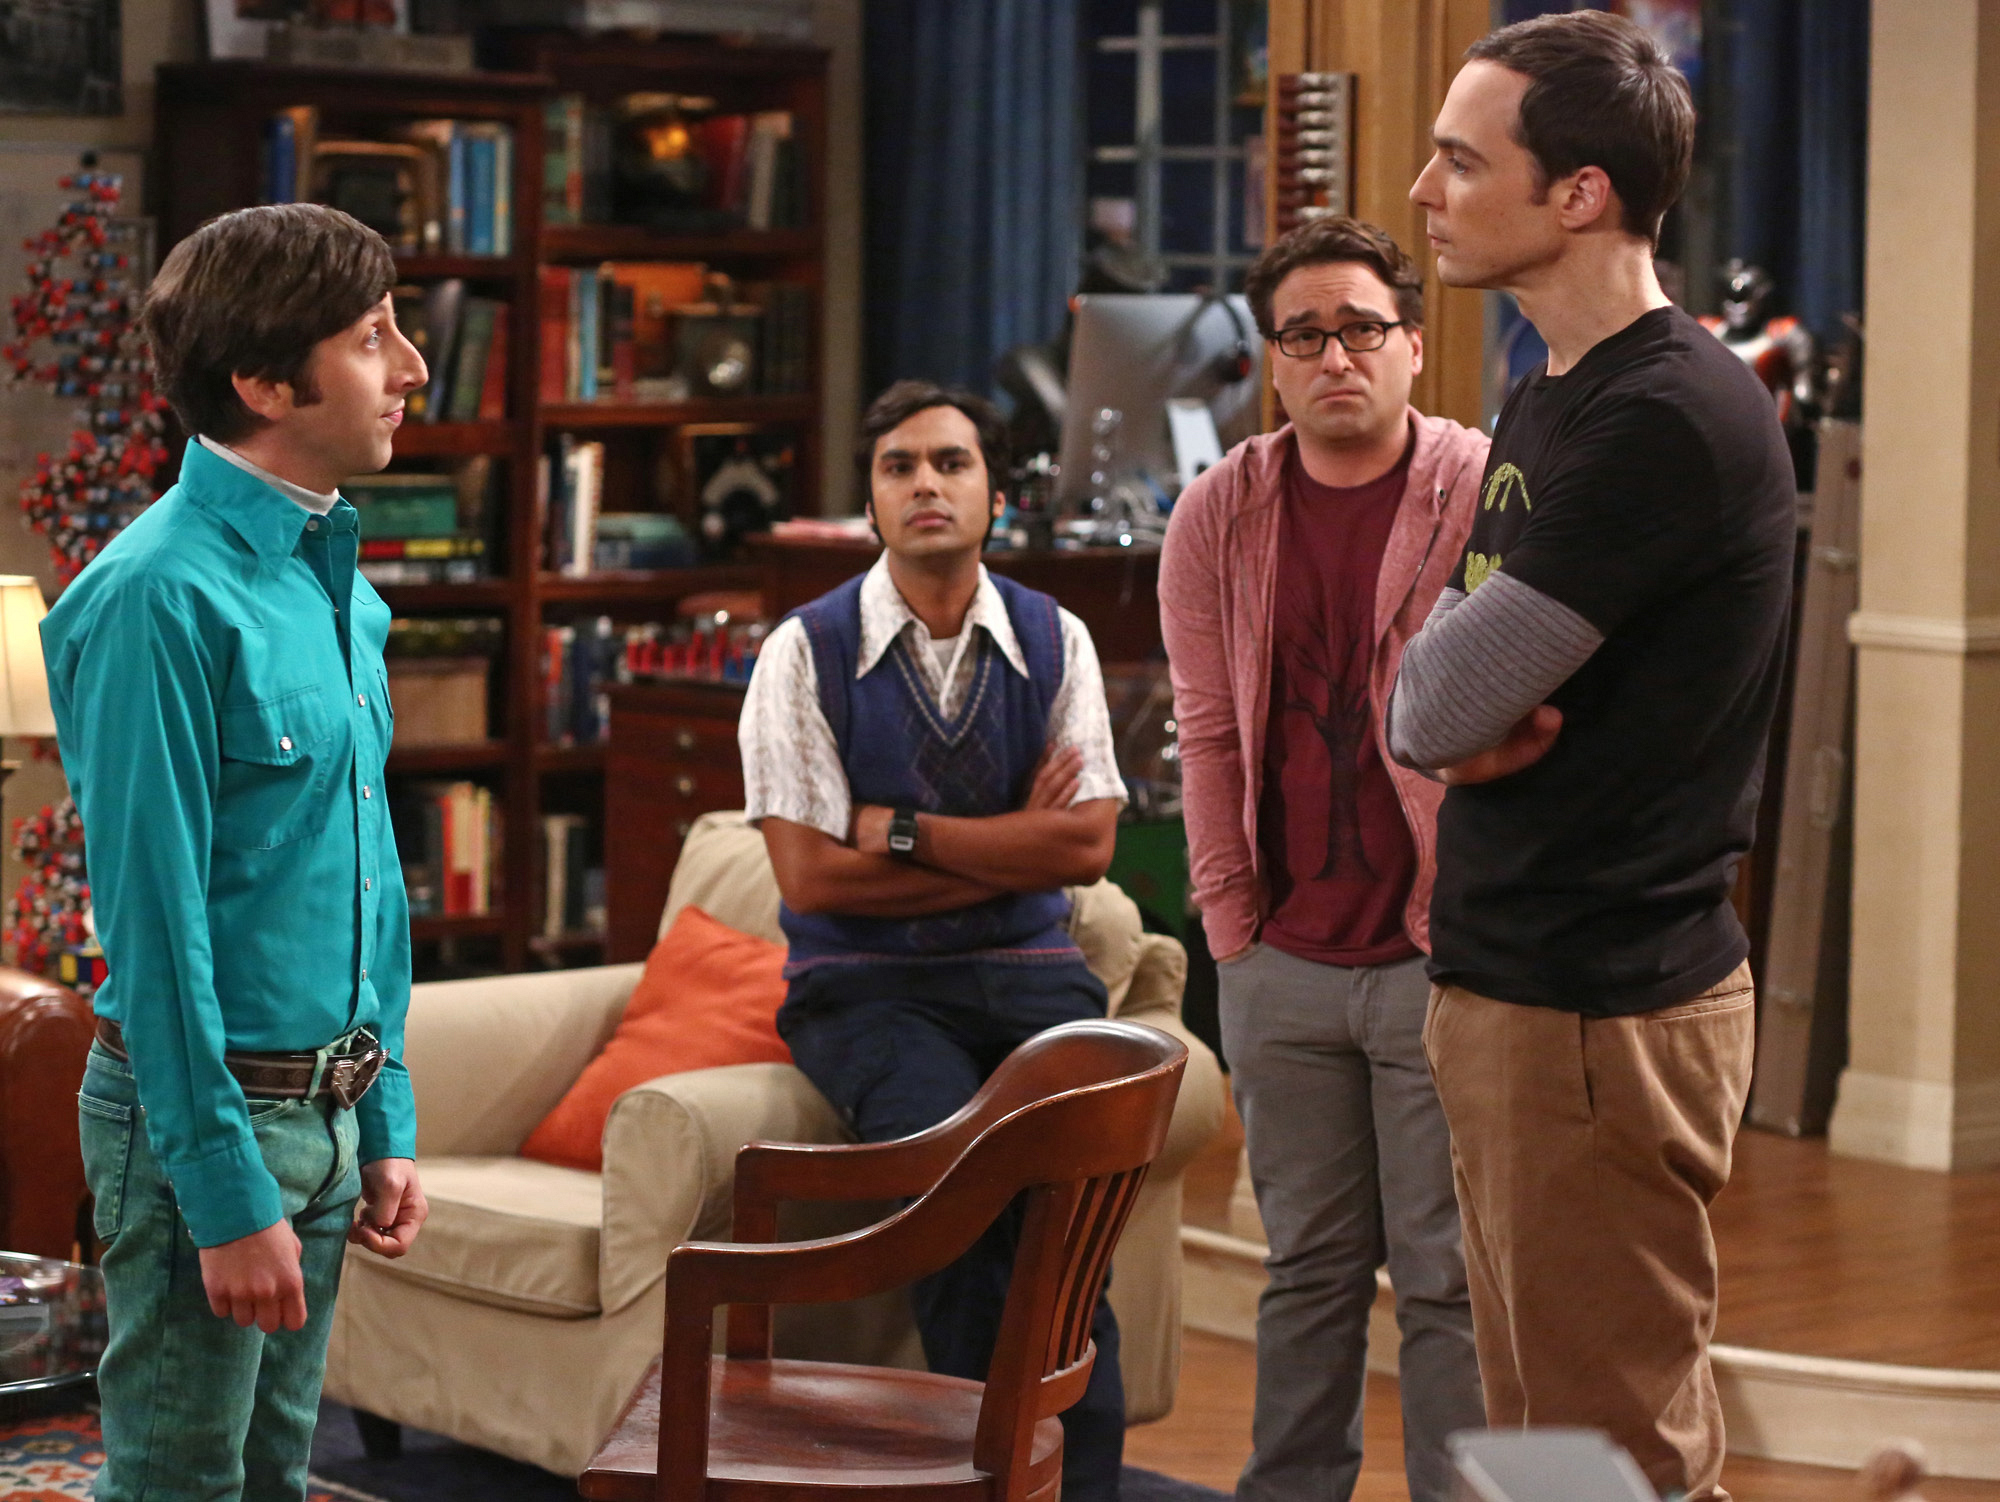 Howard and Sheldon stand off